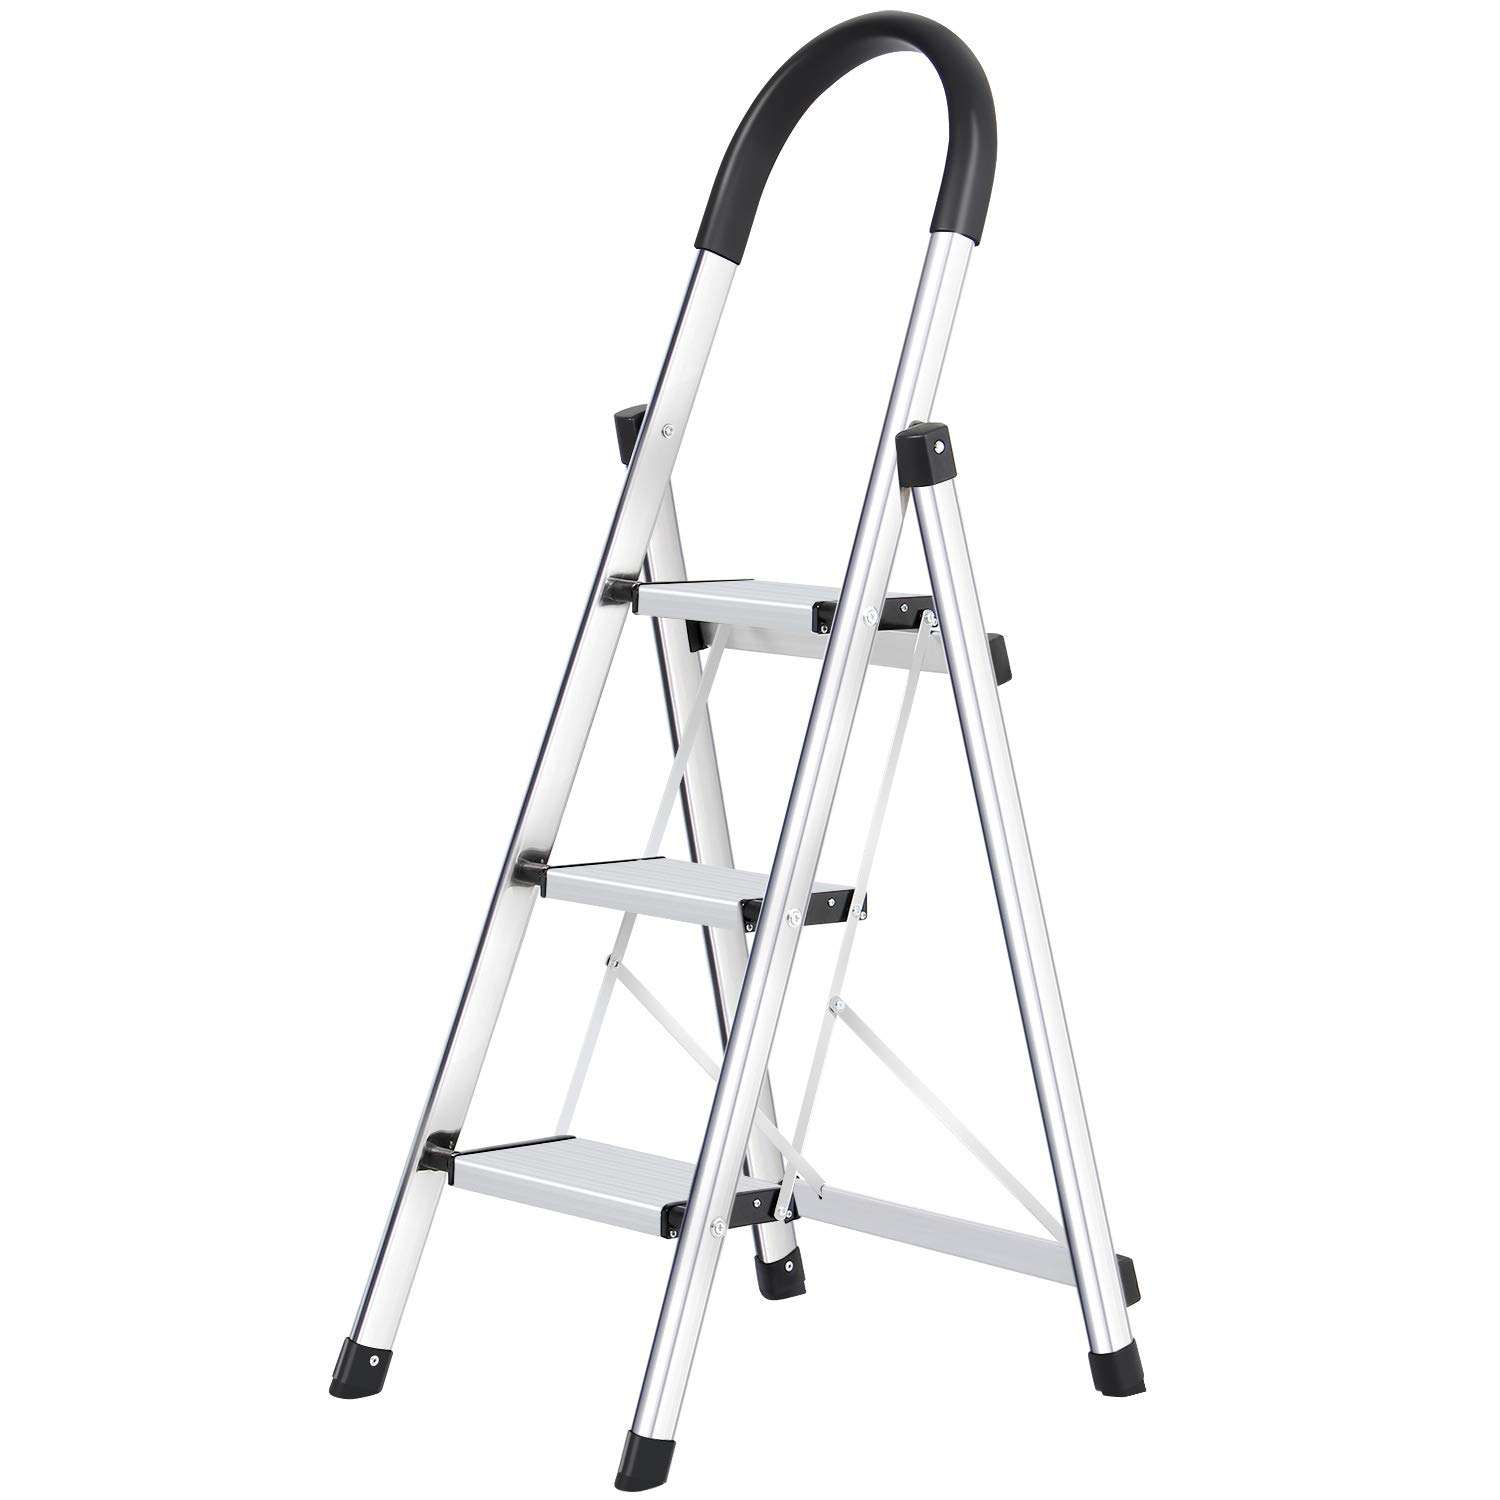 Lionladder 3 Step Ladder Folding Step Stool with Rubber Hand Grip 330lbs Capacity, Portable